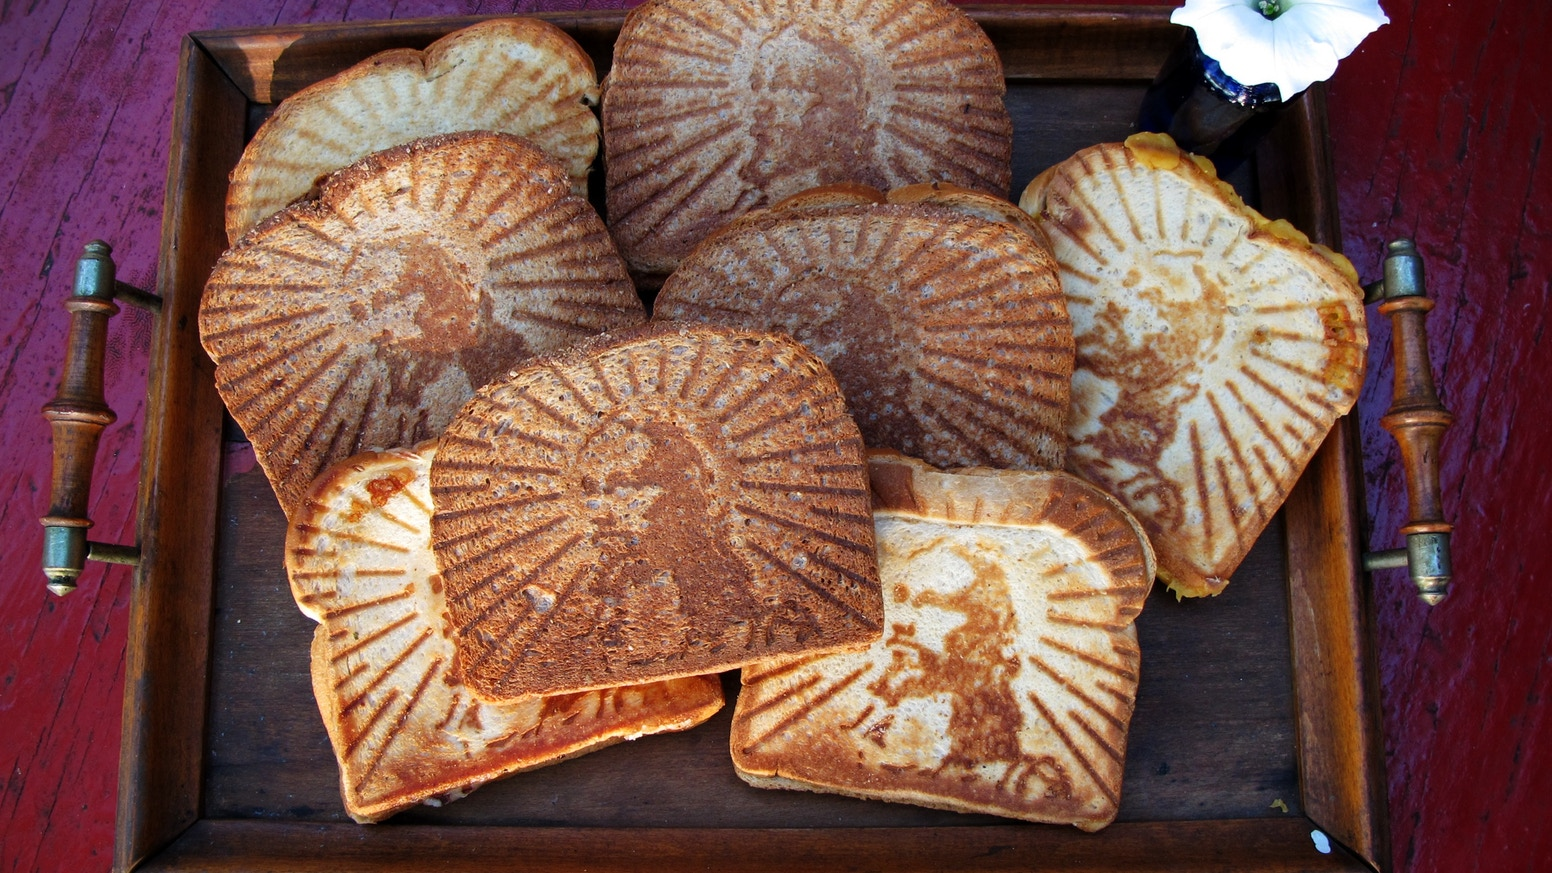 Grilled Cheesus crowdfunding